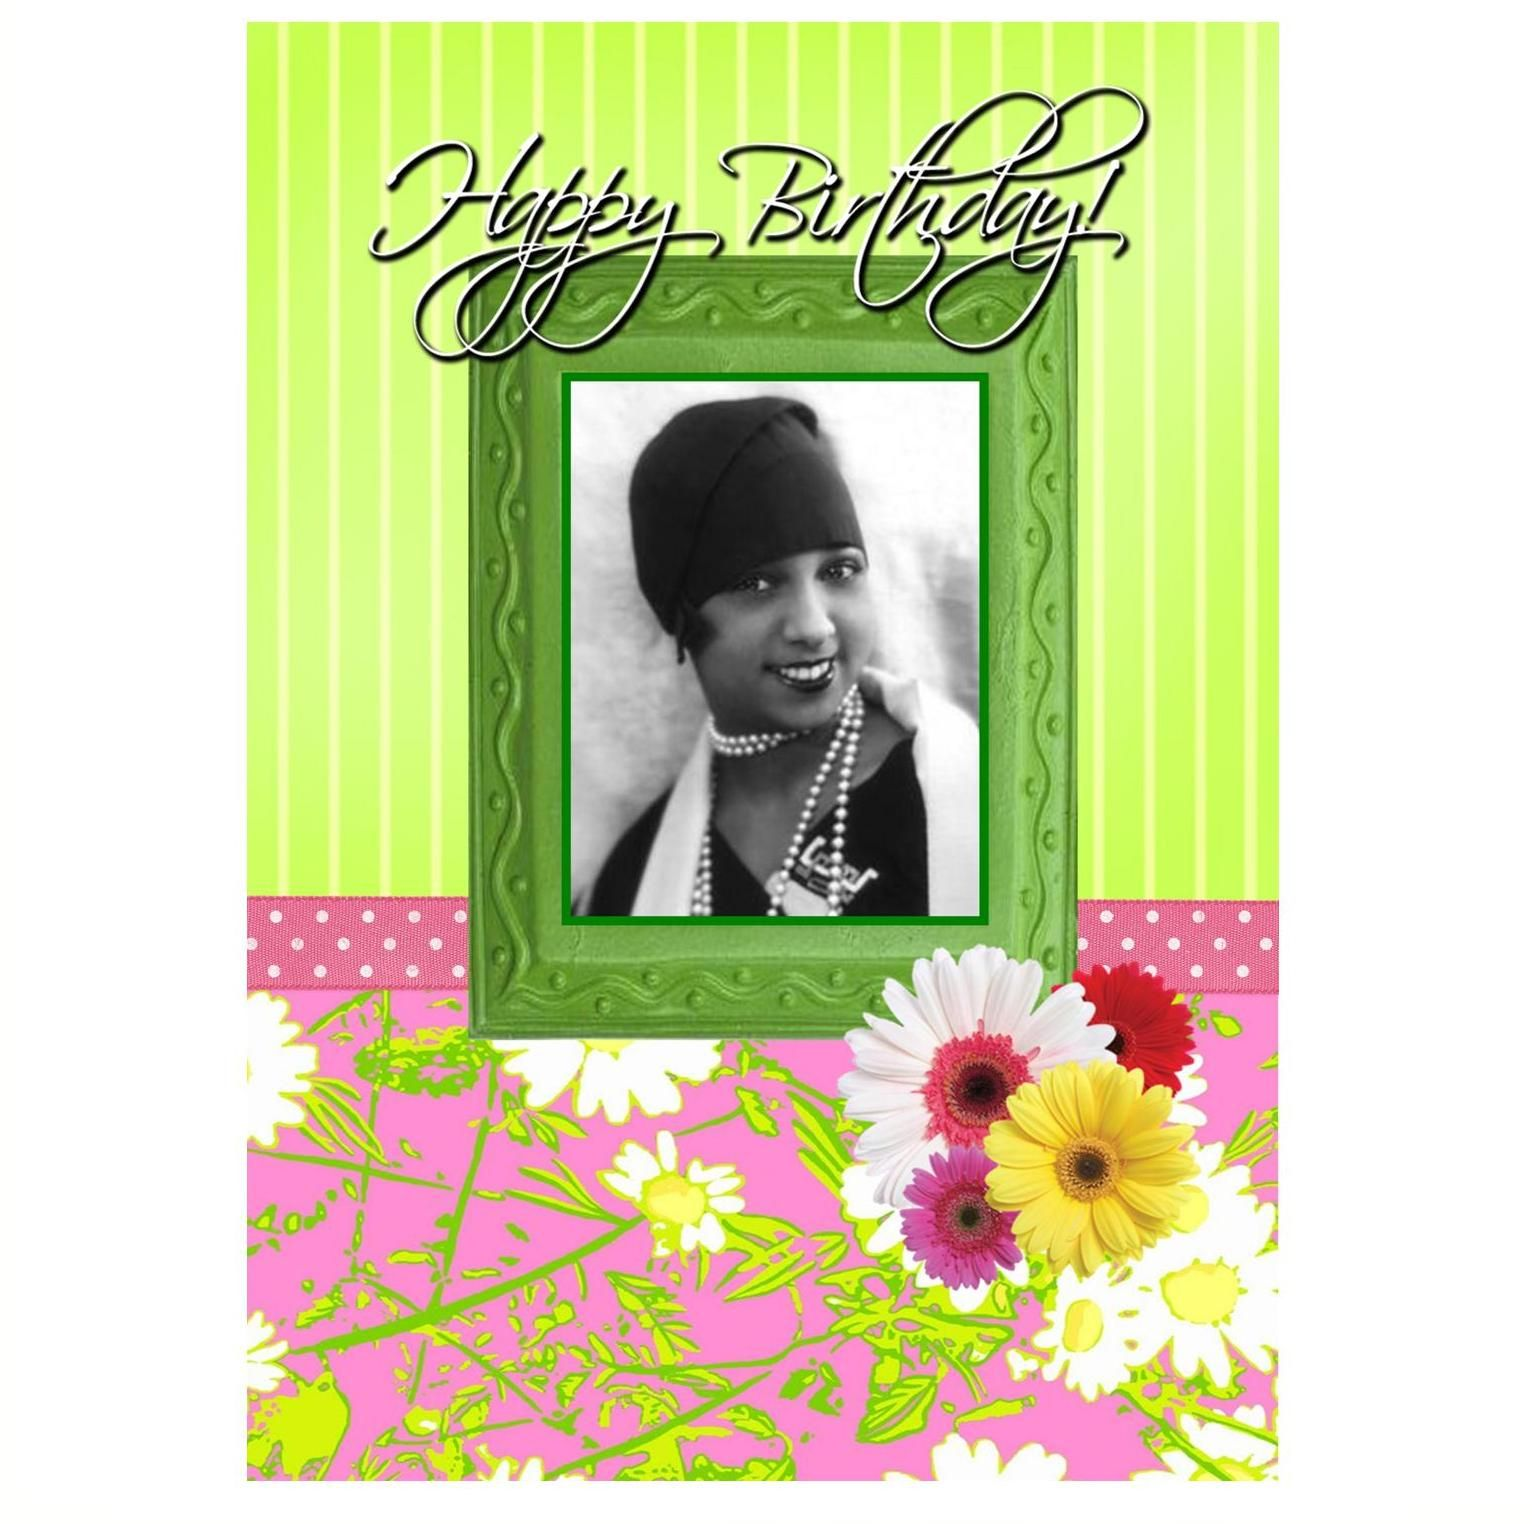 Happy birthday card birthday woman black woman josephine baker happy birthday card birthday woman black woman josephine baker black greeting cards black people cards african american black actress m4hsunfo